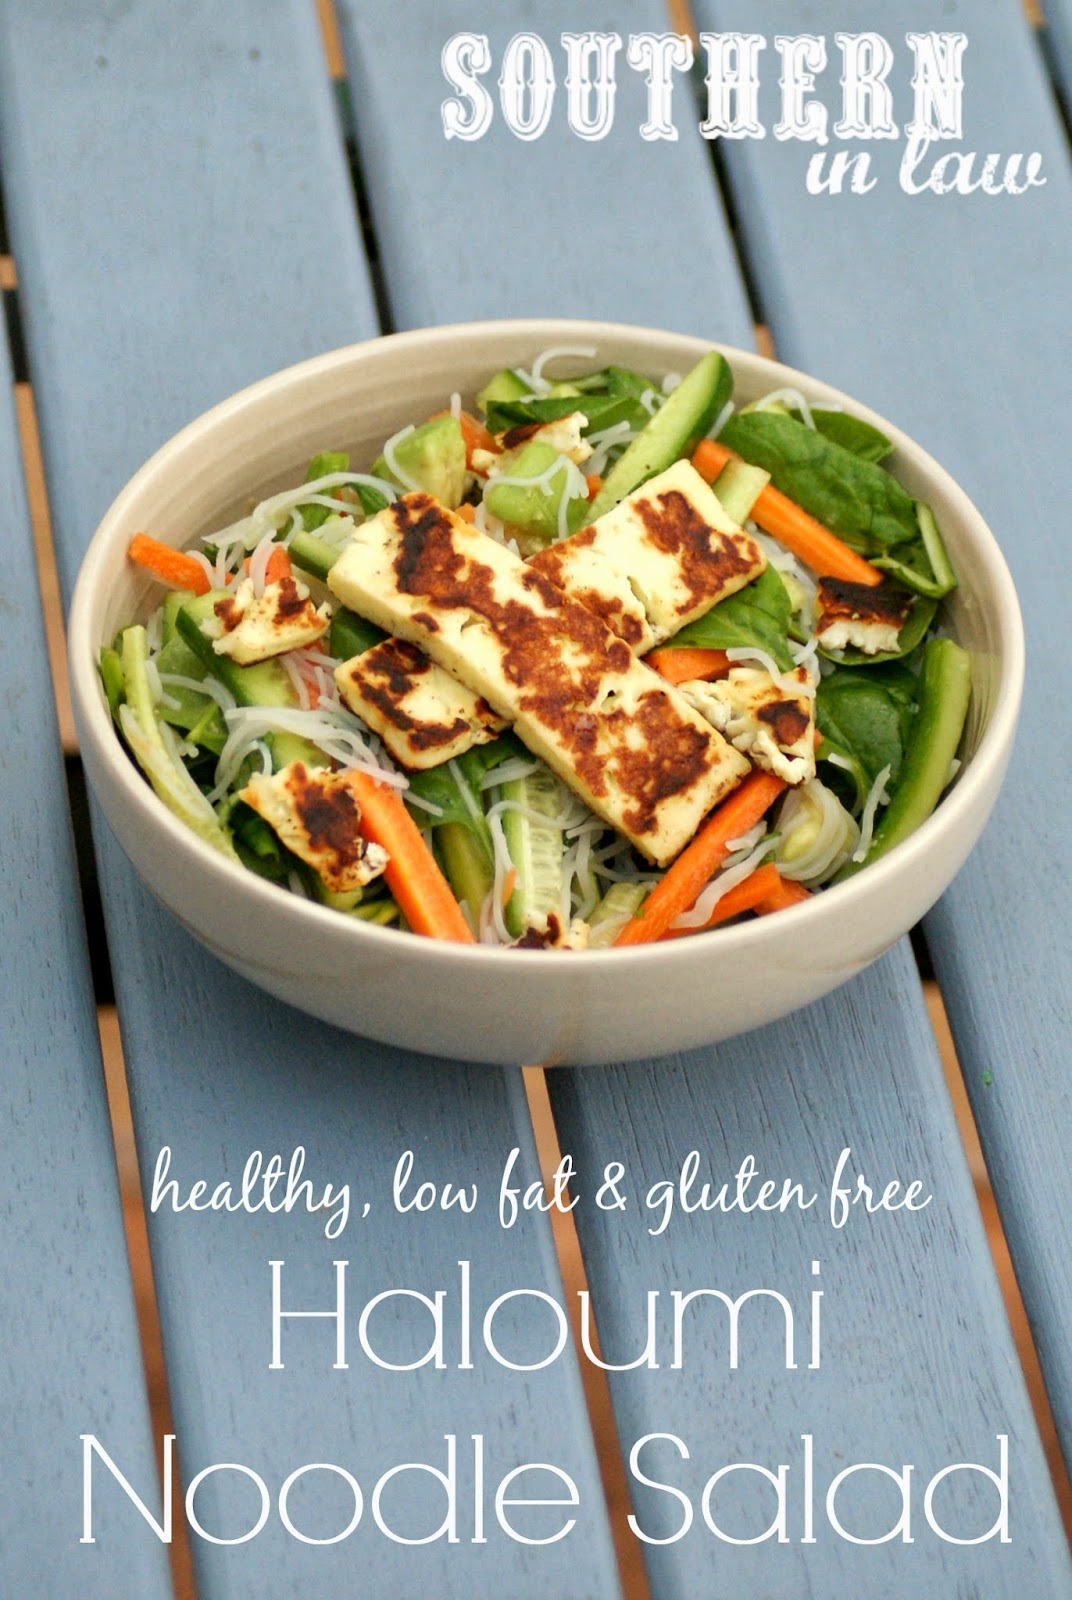 Haloumi Noodle Salad Recipe - healthy, gluten free, low fat